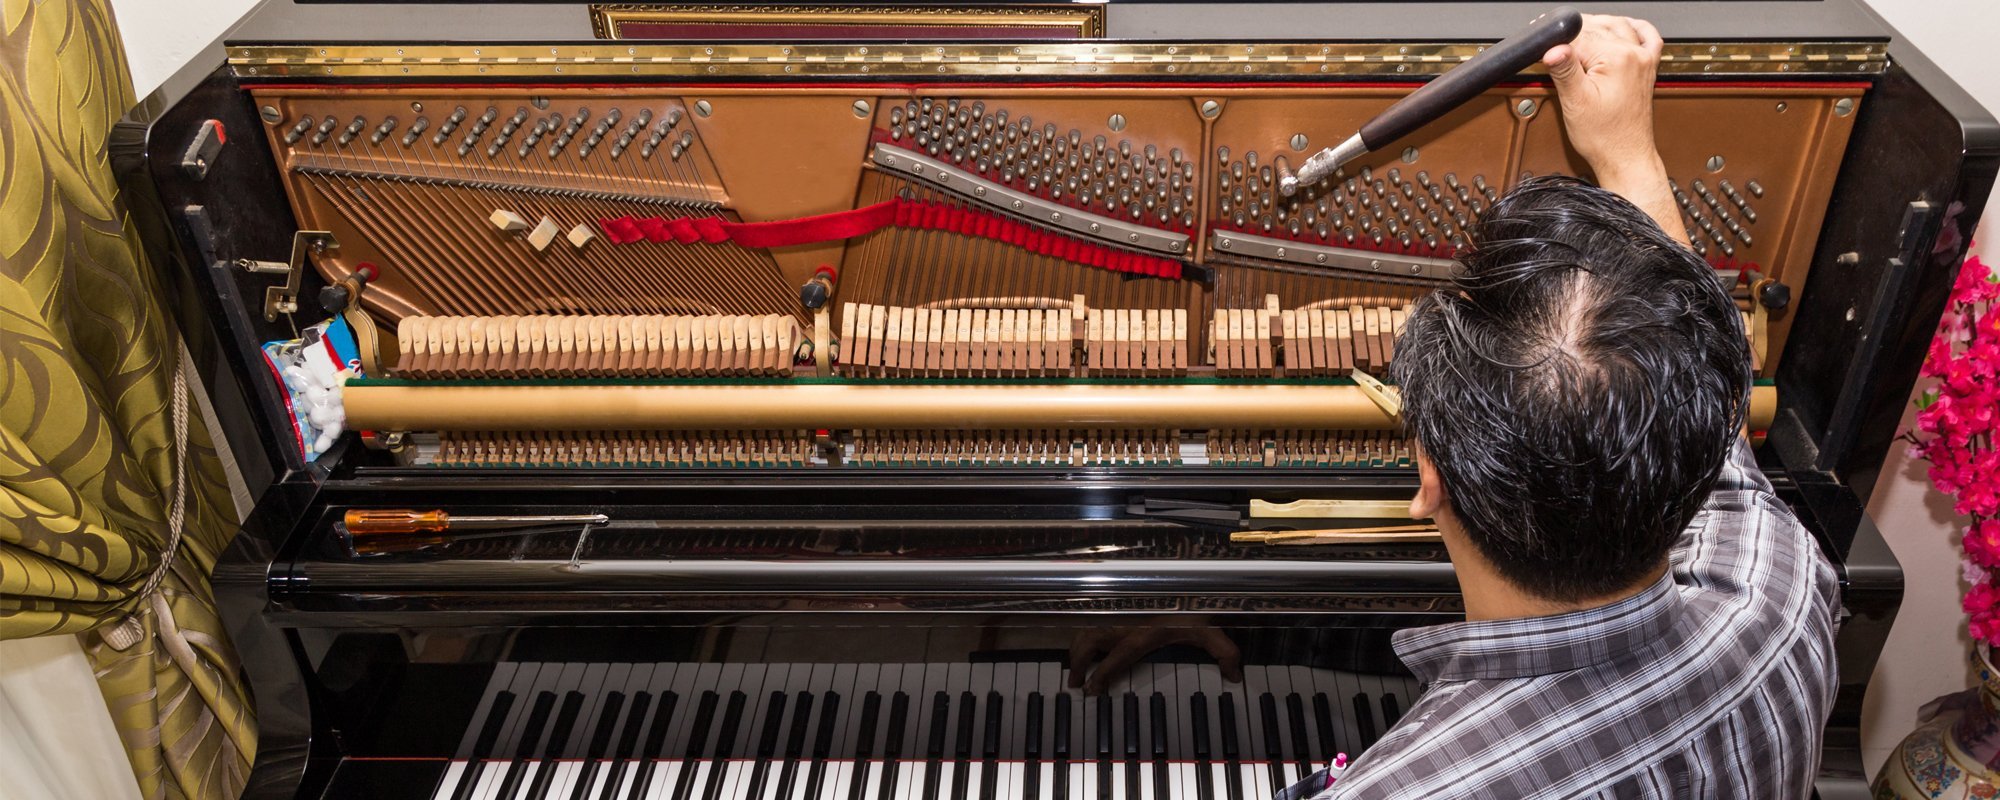 Tuning of piano by expert